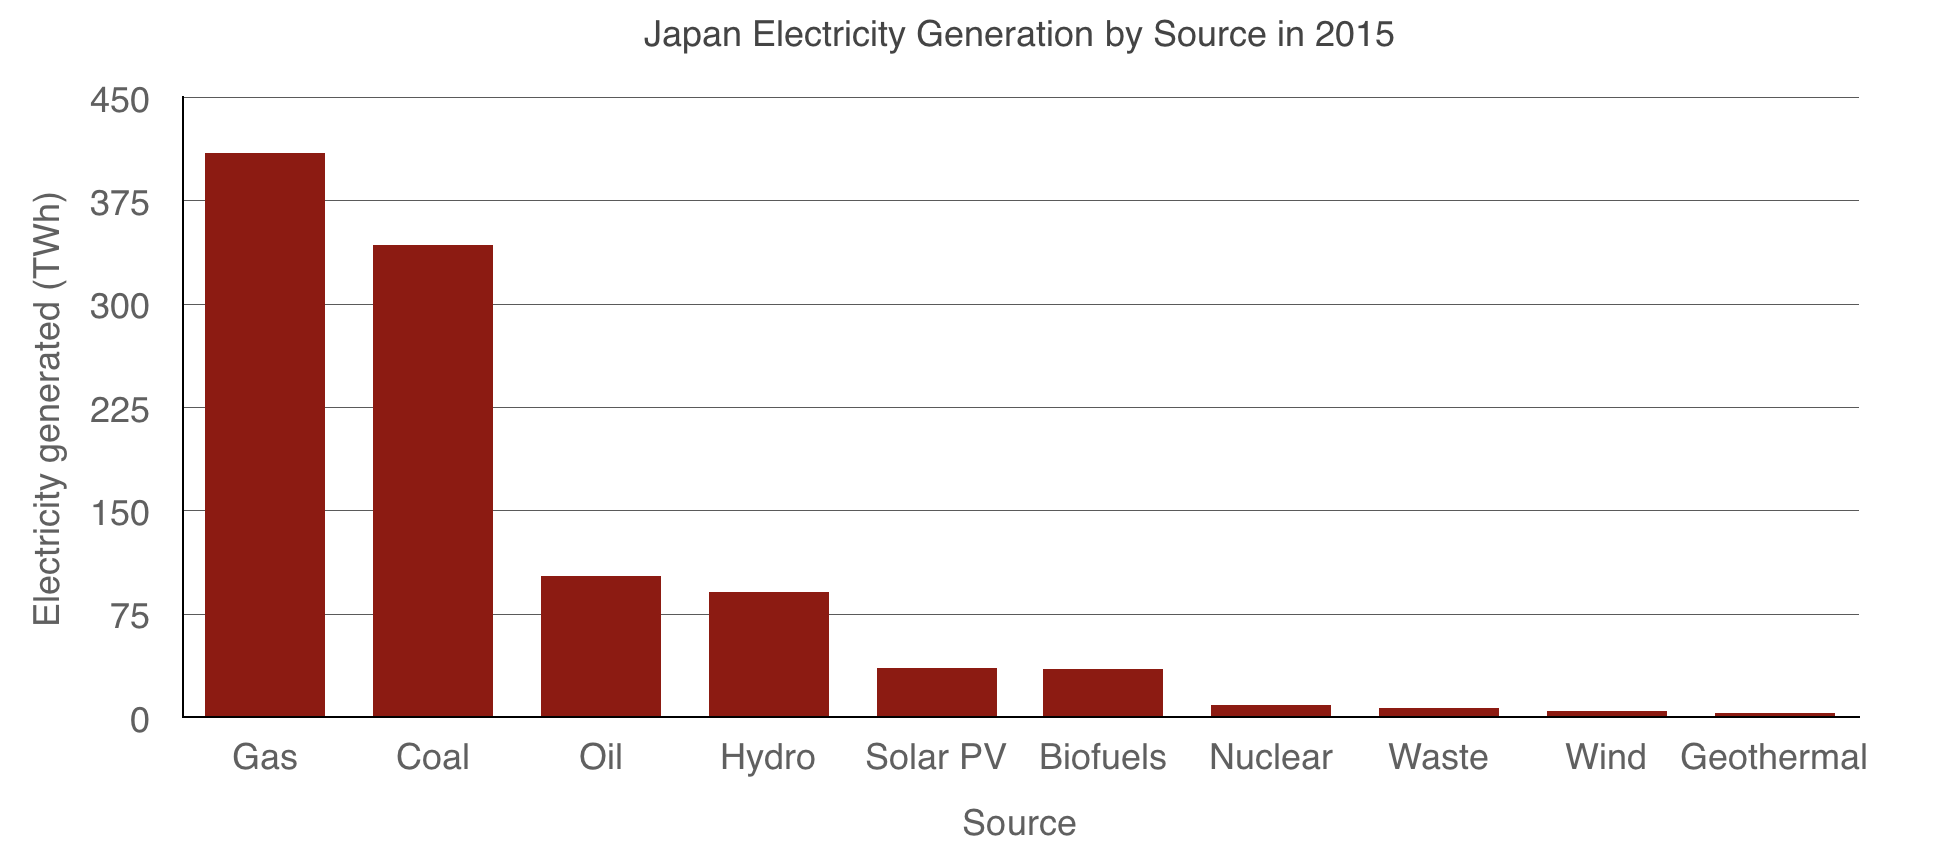 bar graph of Japan electricity generation by source for 2015 with gas and coal generating the most power